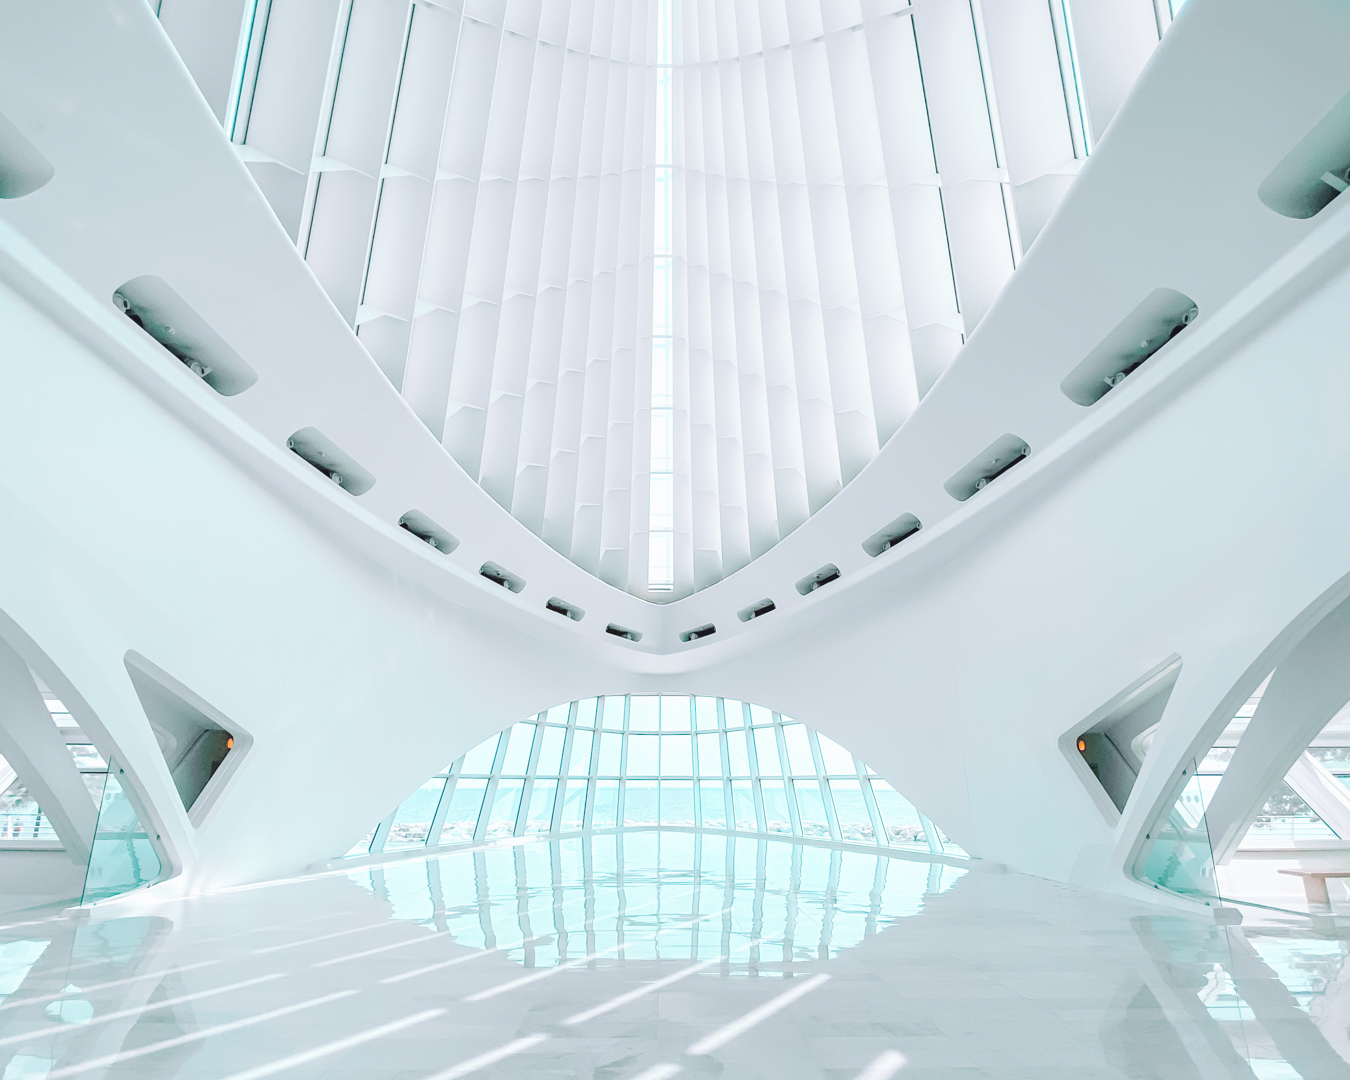 Milwaukee Art Museum from the inside